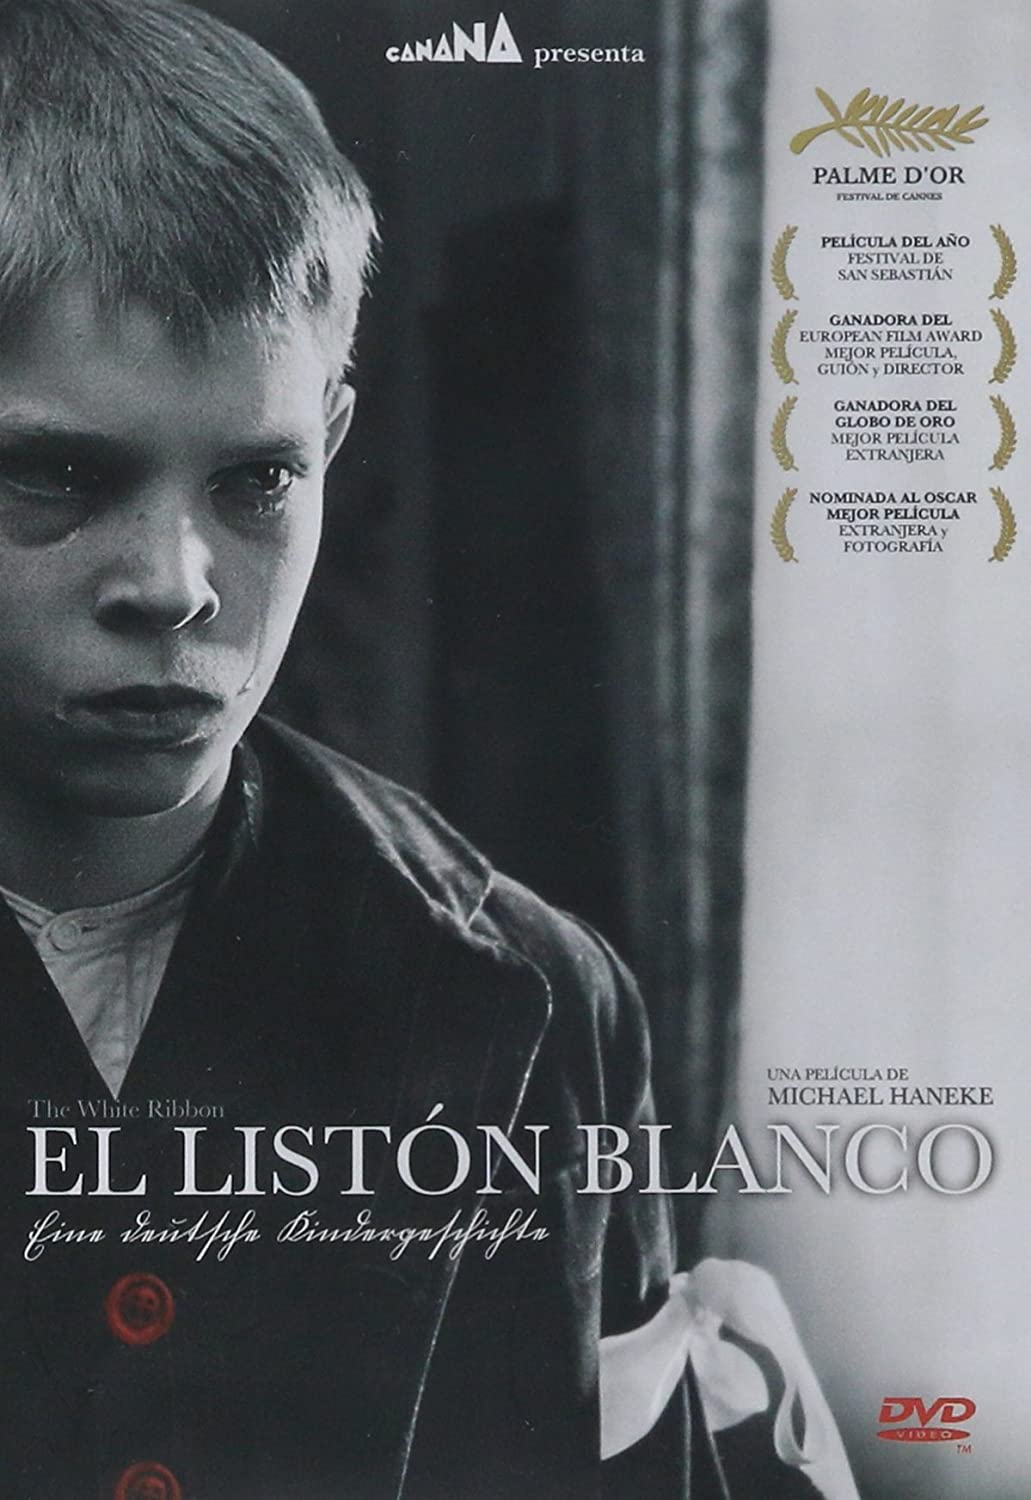 Amazon.com: EL LISTON BLANCO: Movies & TV